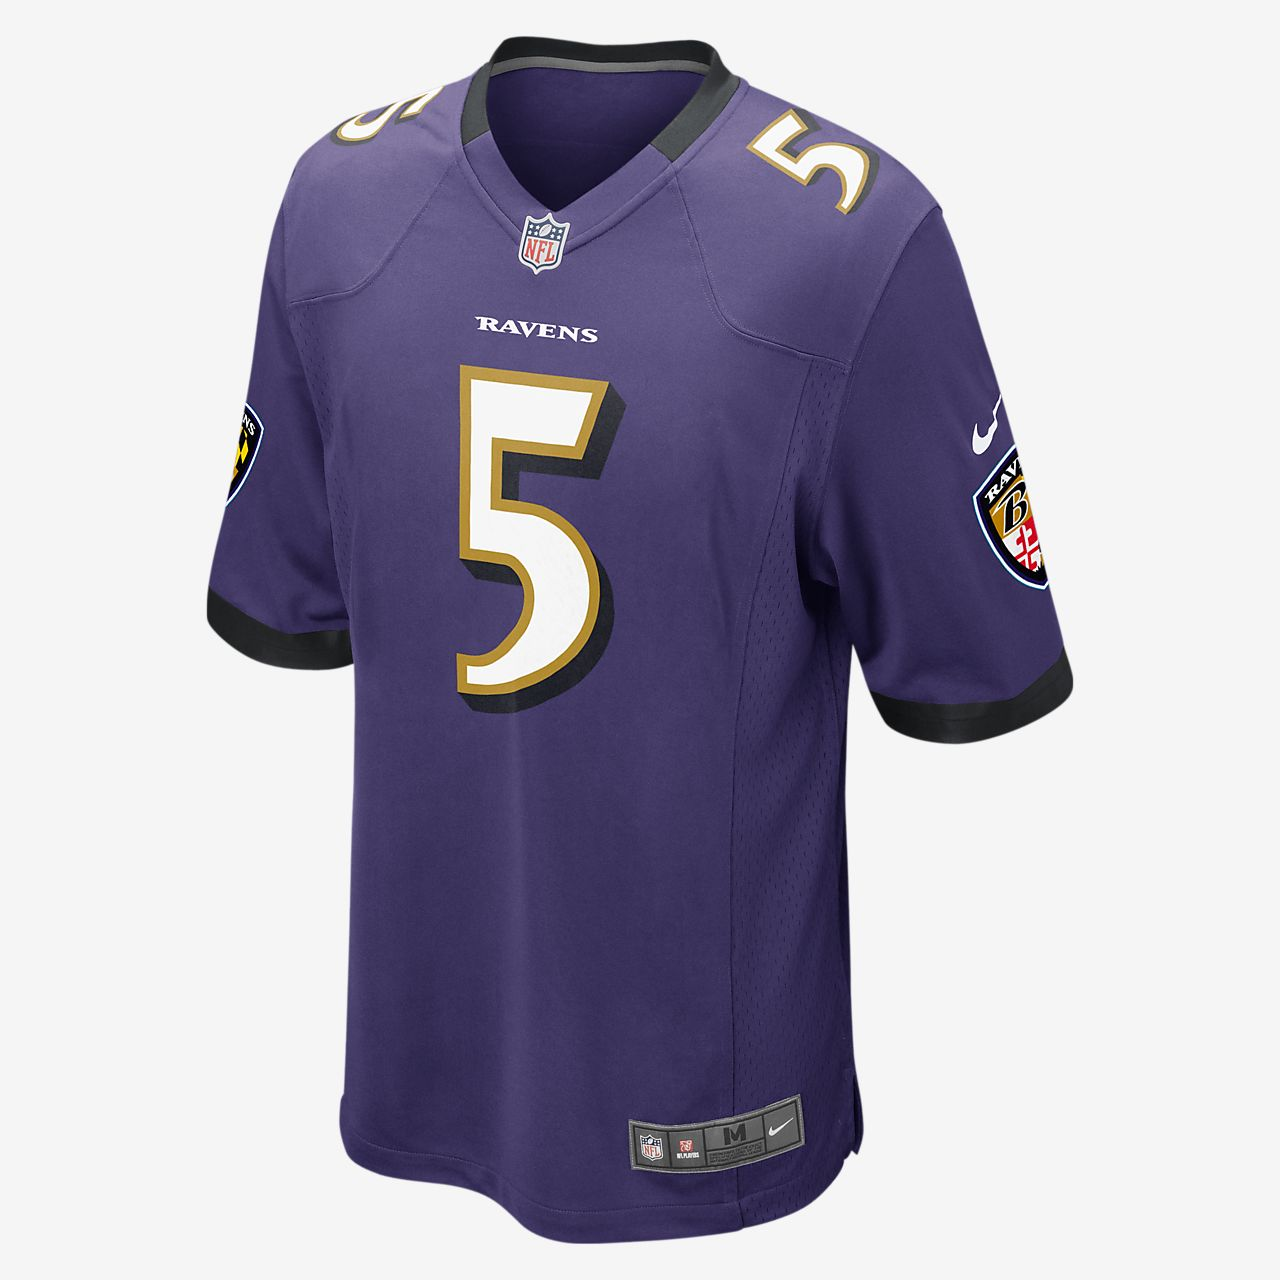 Maglia da football americano NFL Baltimore Ravens (Joe Flacco) Home Game - Uomo